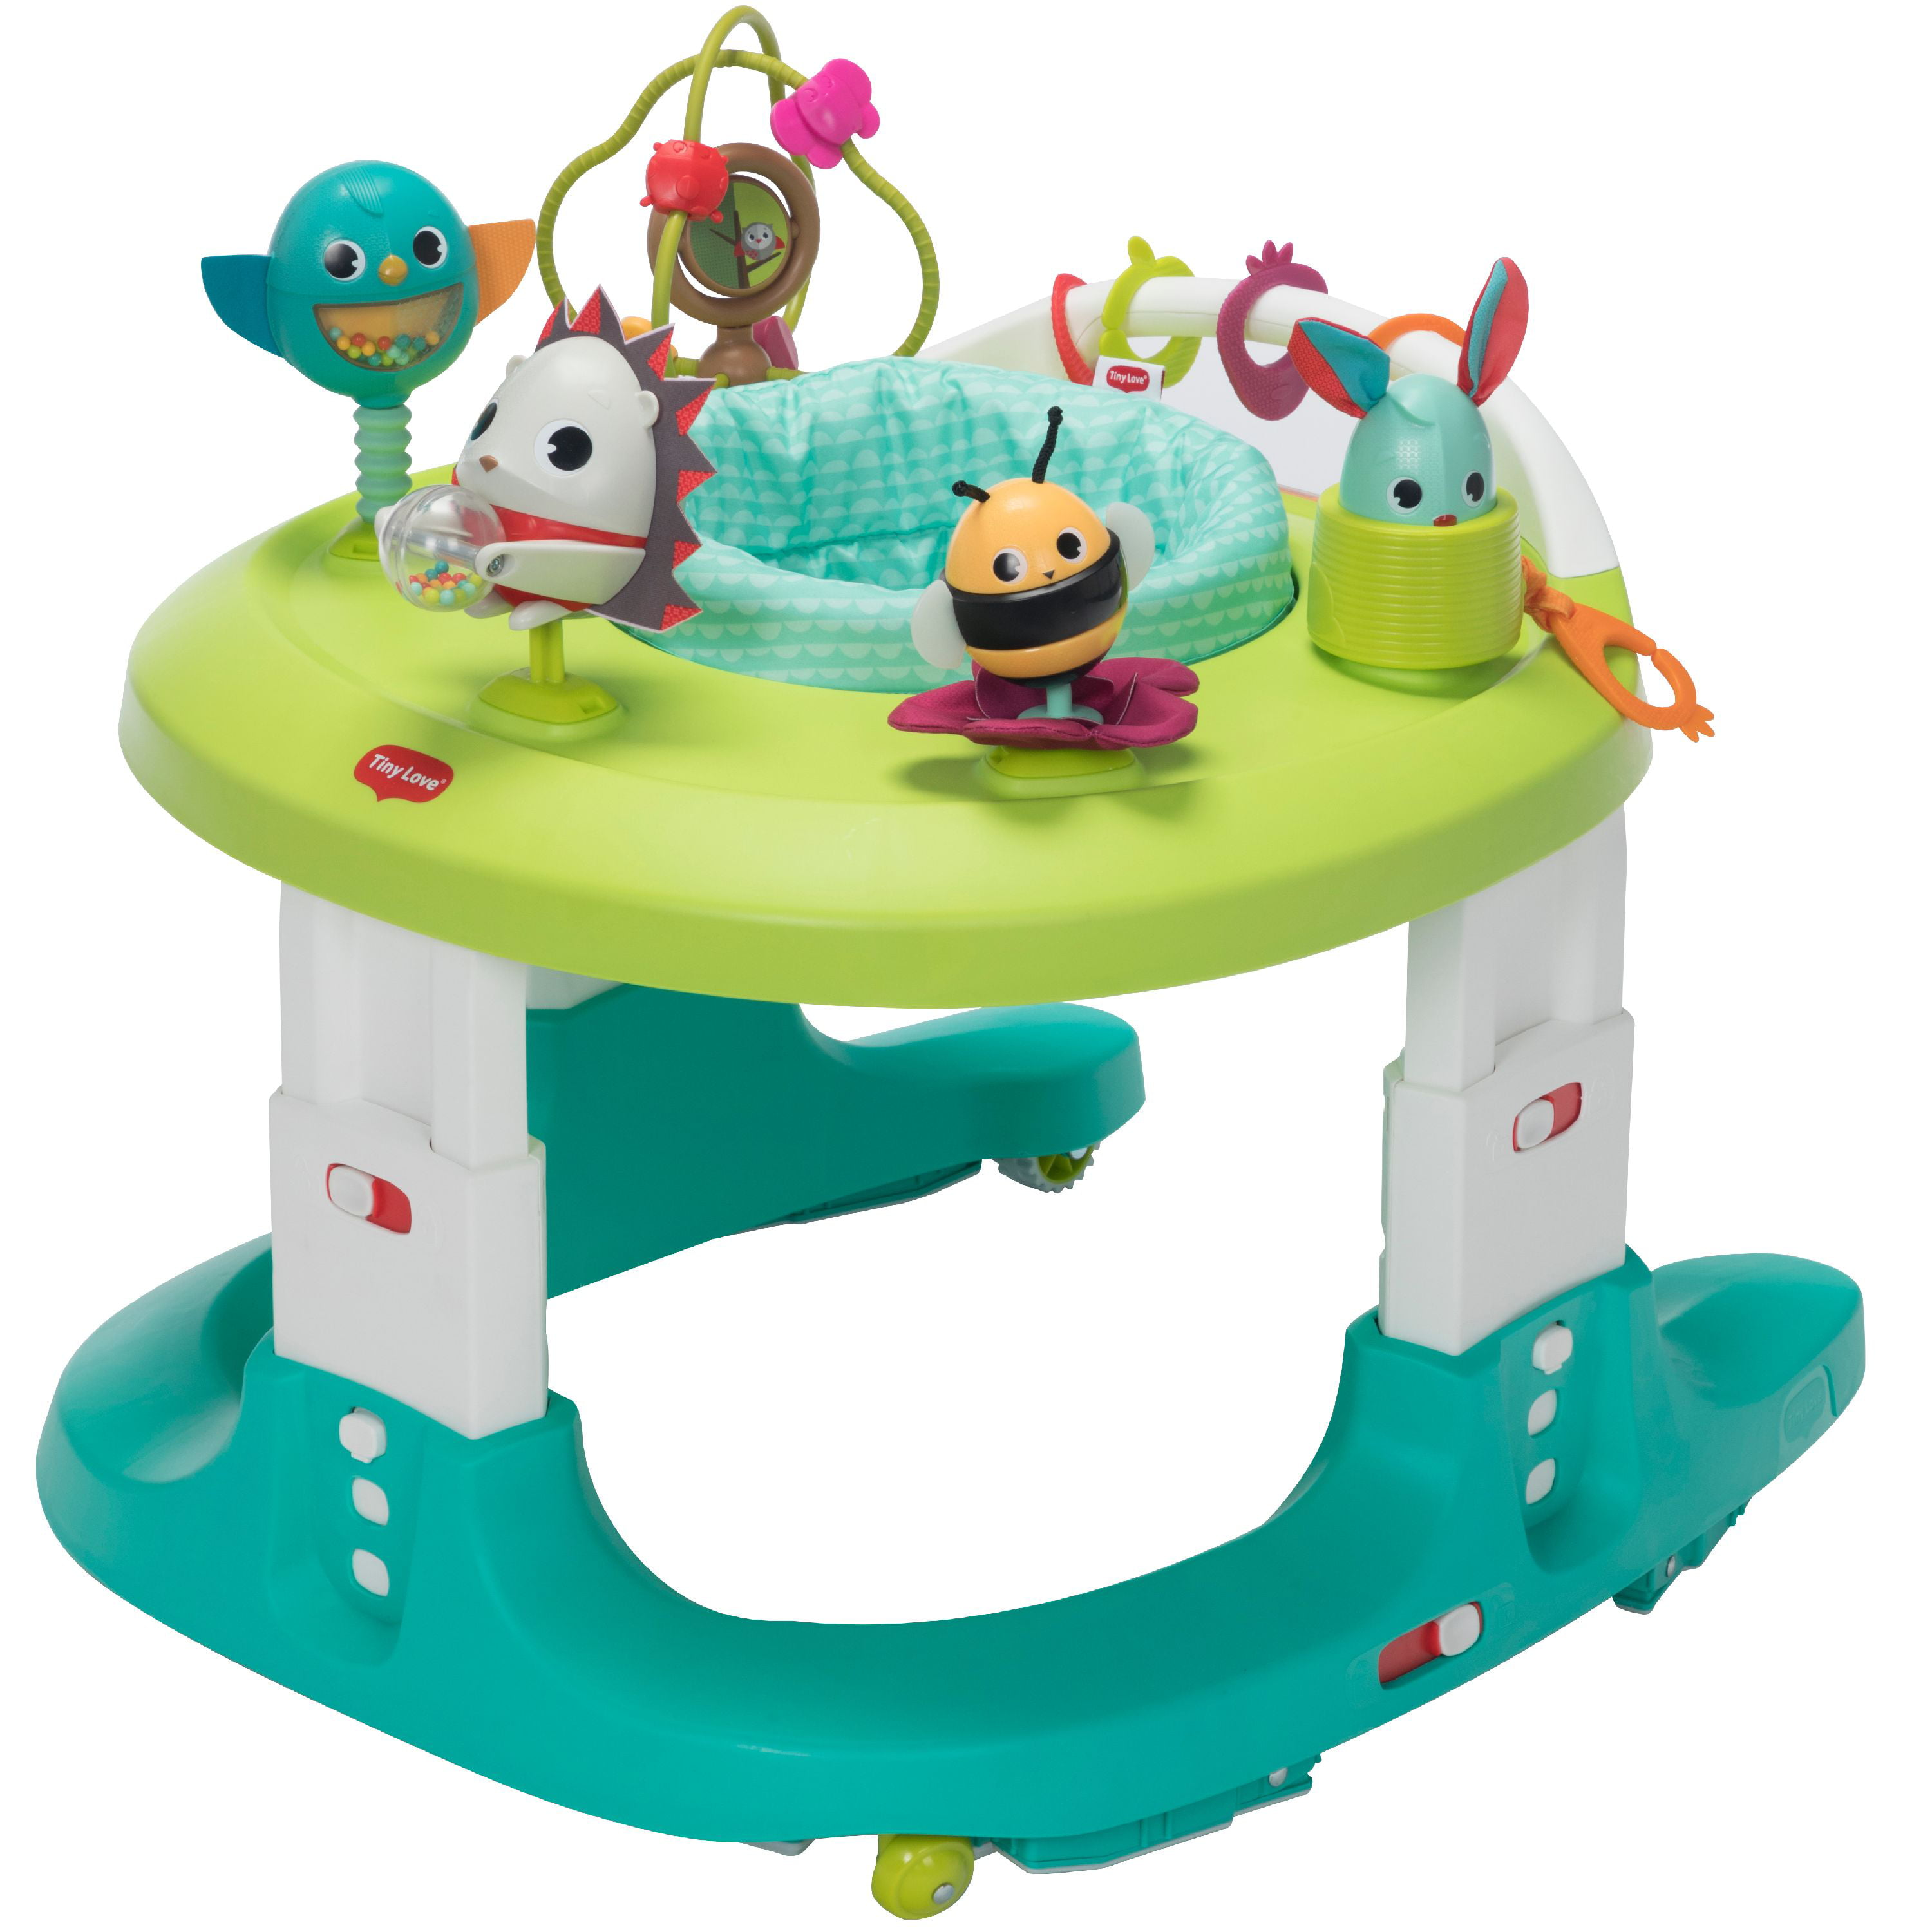 ef67cf981 Tiny Love 4-in-1 Here I Grow Mobile Activity Center